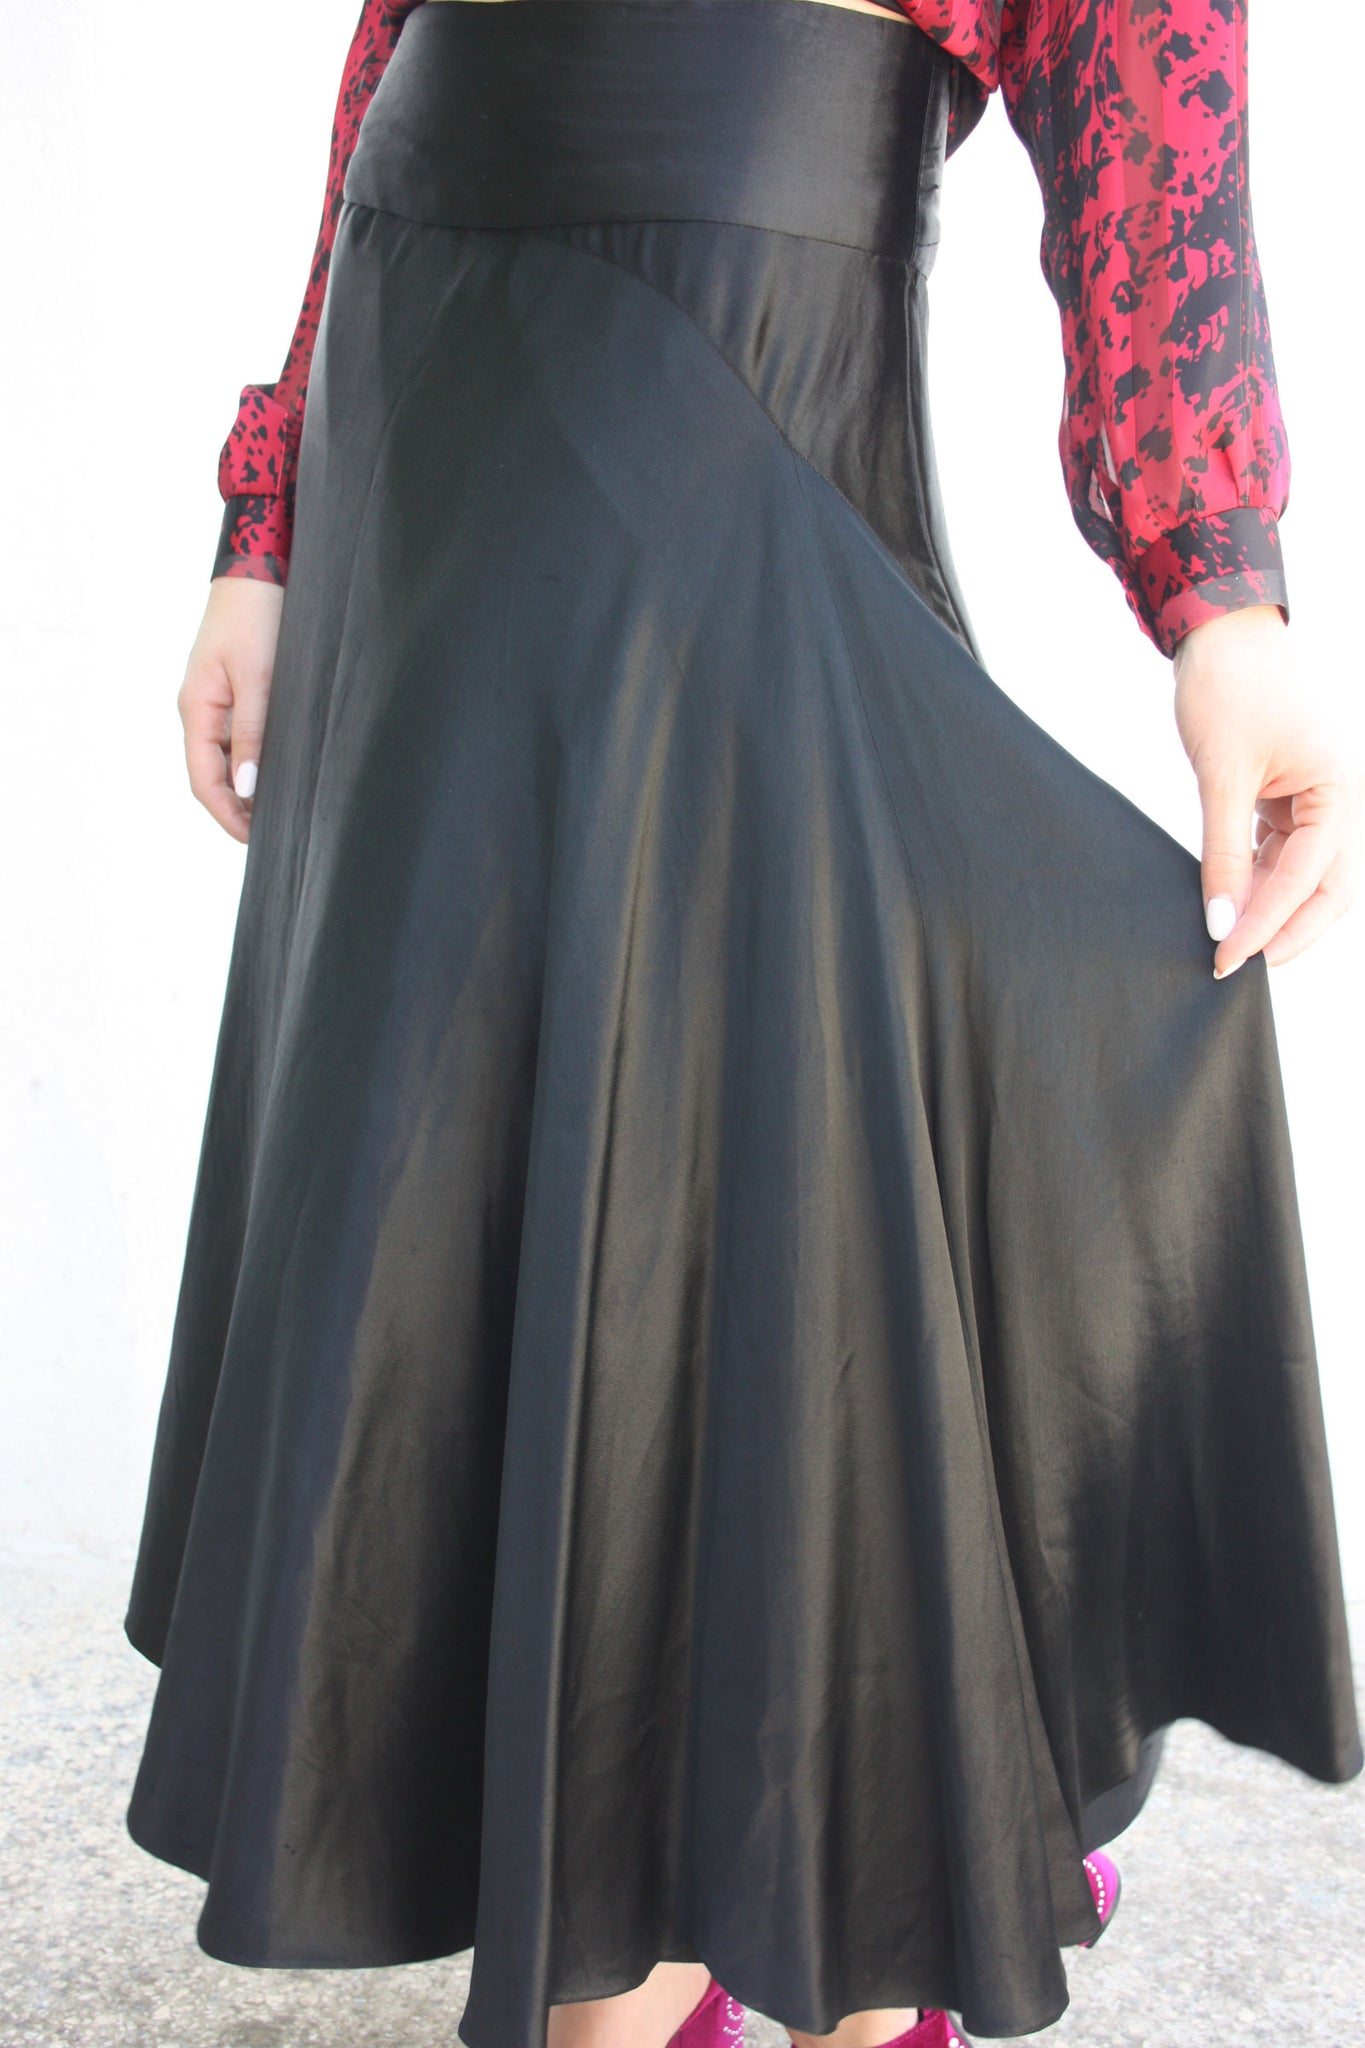 Vintage black satin bias cut skirt - Shop SoLovesVintage